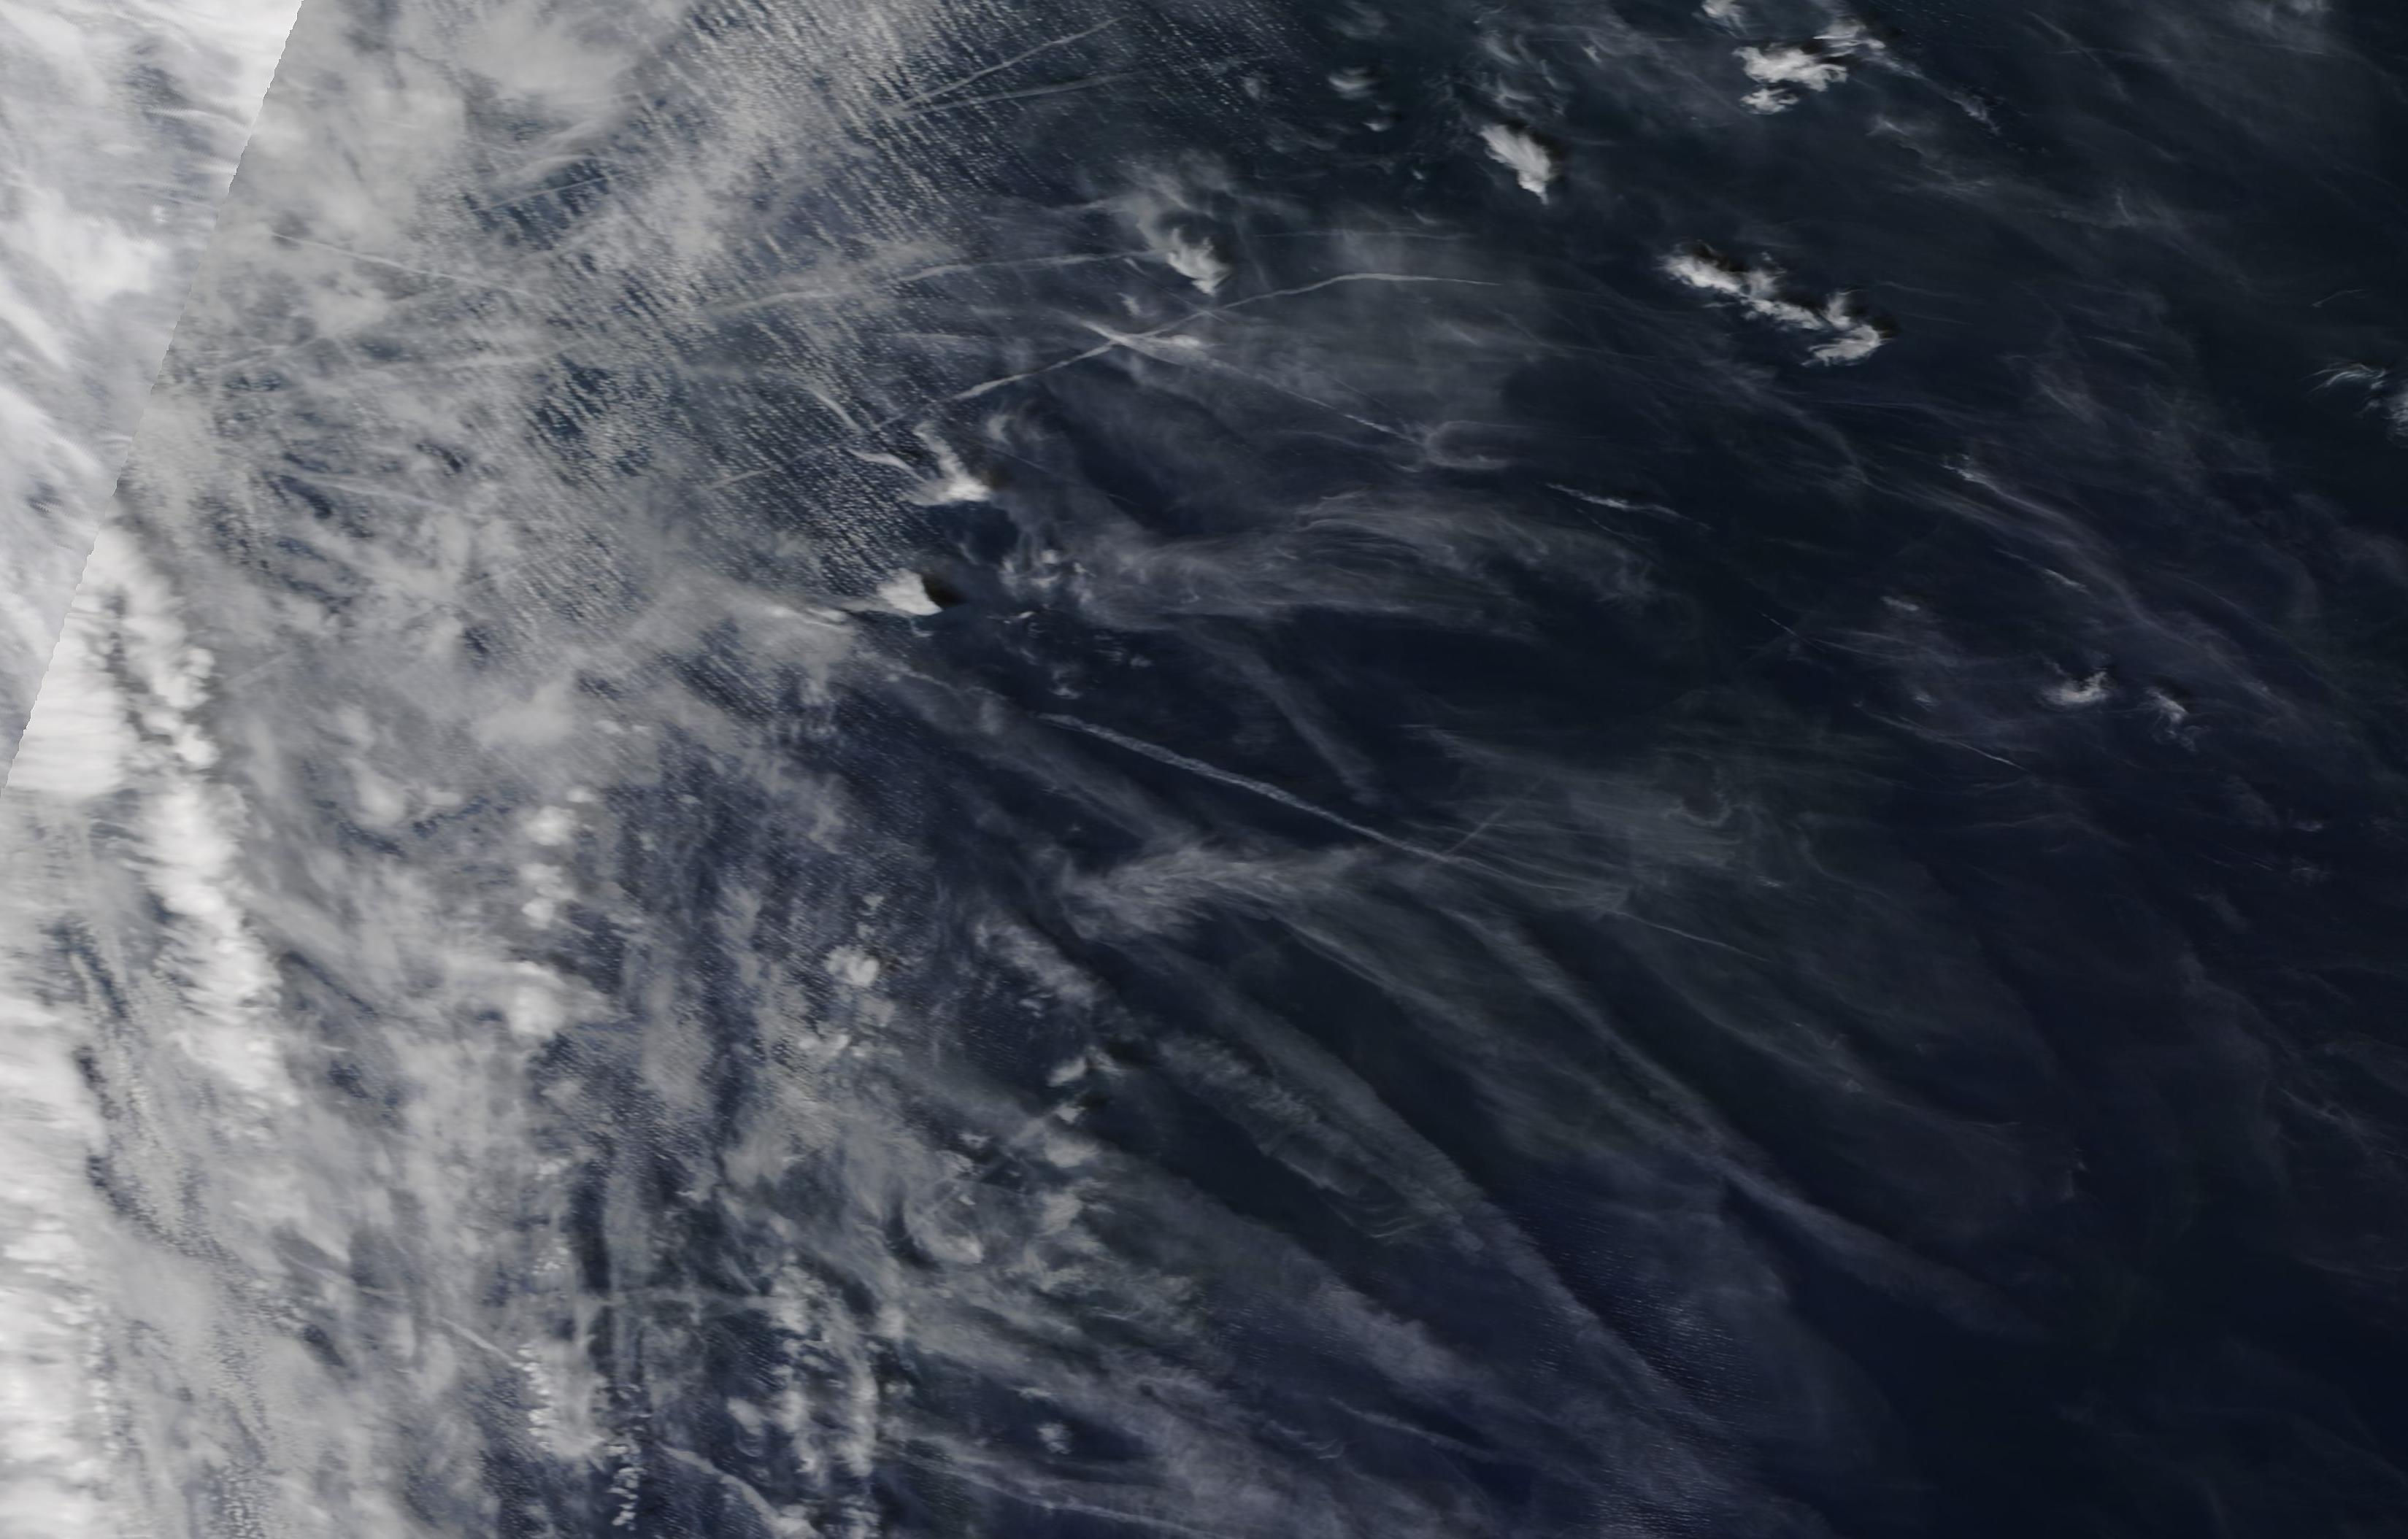 a closer look chemtrails mid Atlantic ie west of Spain and Portugal 12 May 2019 ... https://go.nasa.gov/2E5FCsh